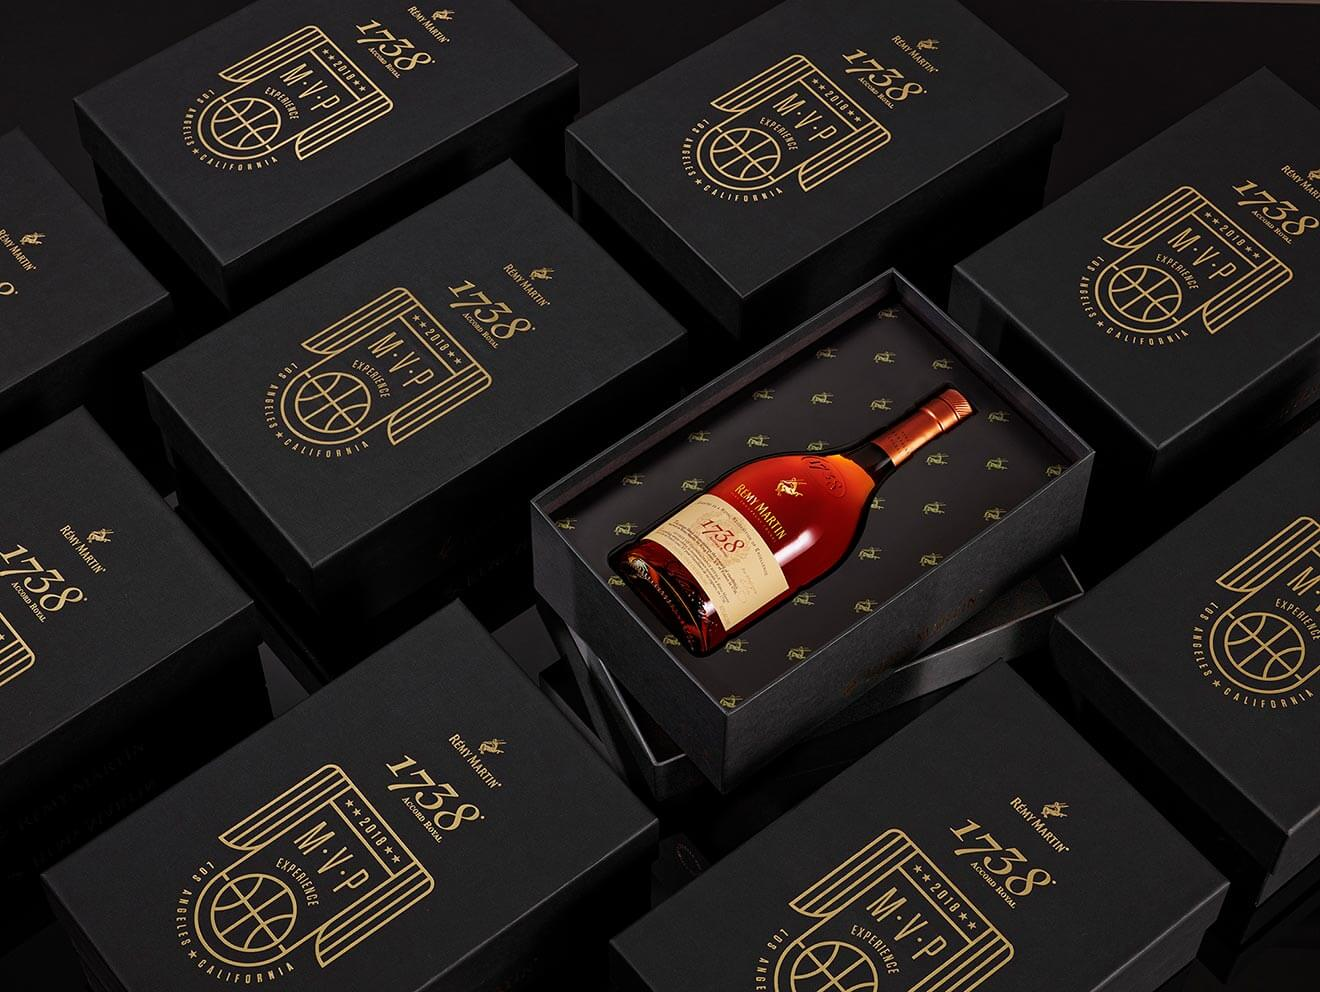 Rémy Martin 1738 Sneaker Box Gift Set, overhead view at angle